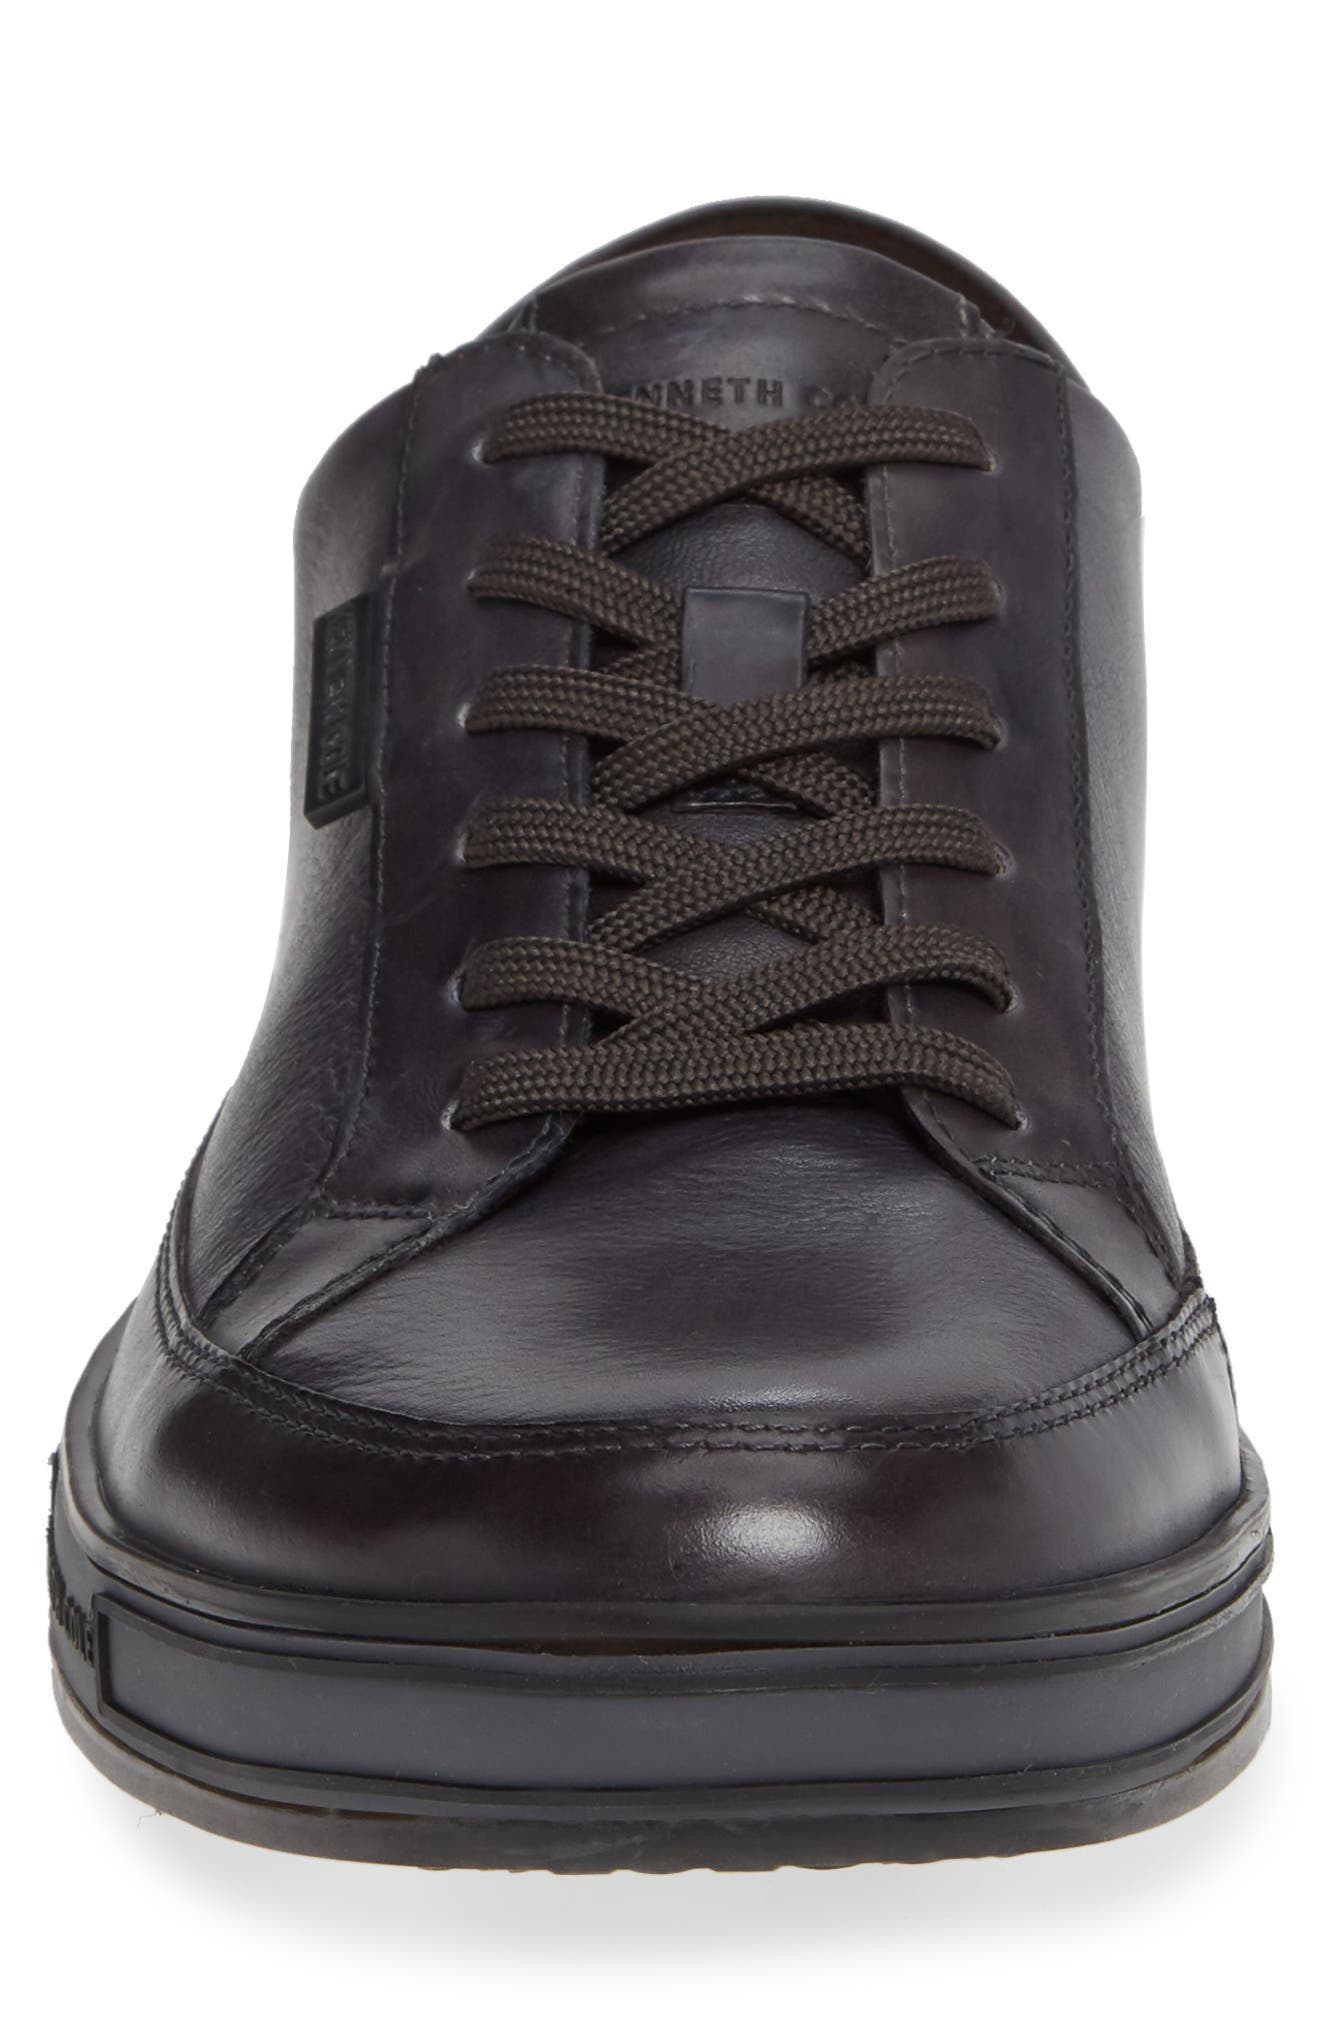 KENNETH COLE NEW YORK, Brand Stand Low Top Sneaker, Alternate thumbnail 4, color, GREY TUMBLED LEATHER/ LEATHER